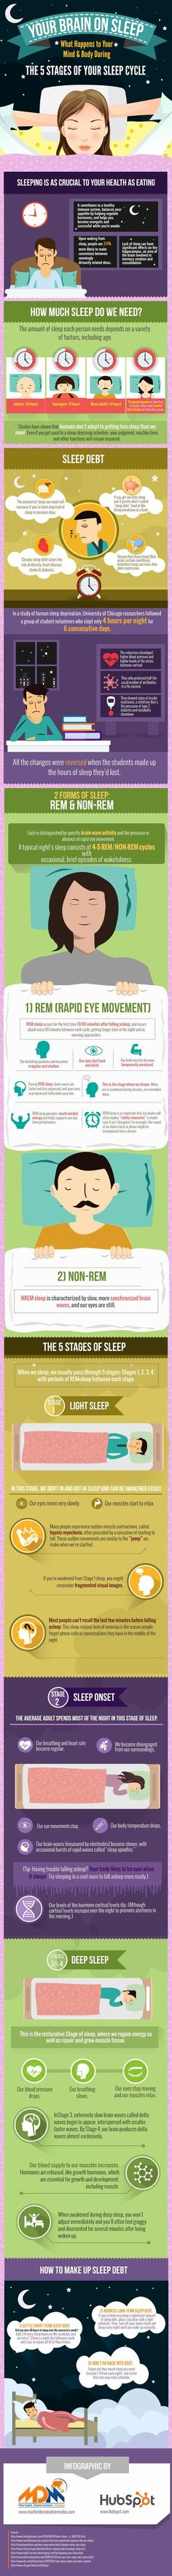 For some people, falling asleep can be more difficult that it sounds. We share a…